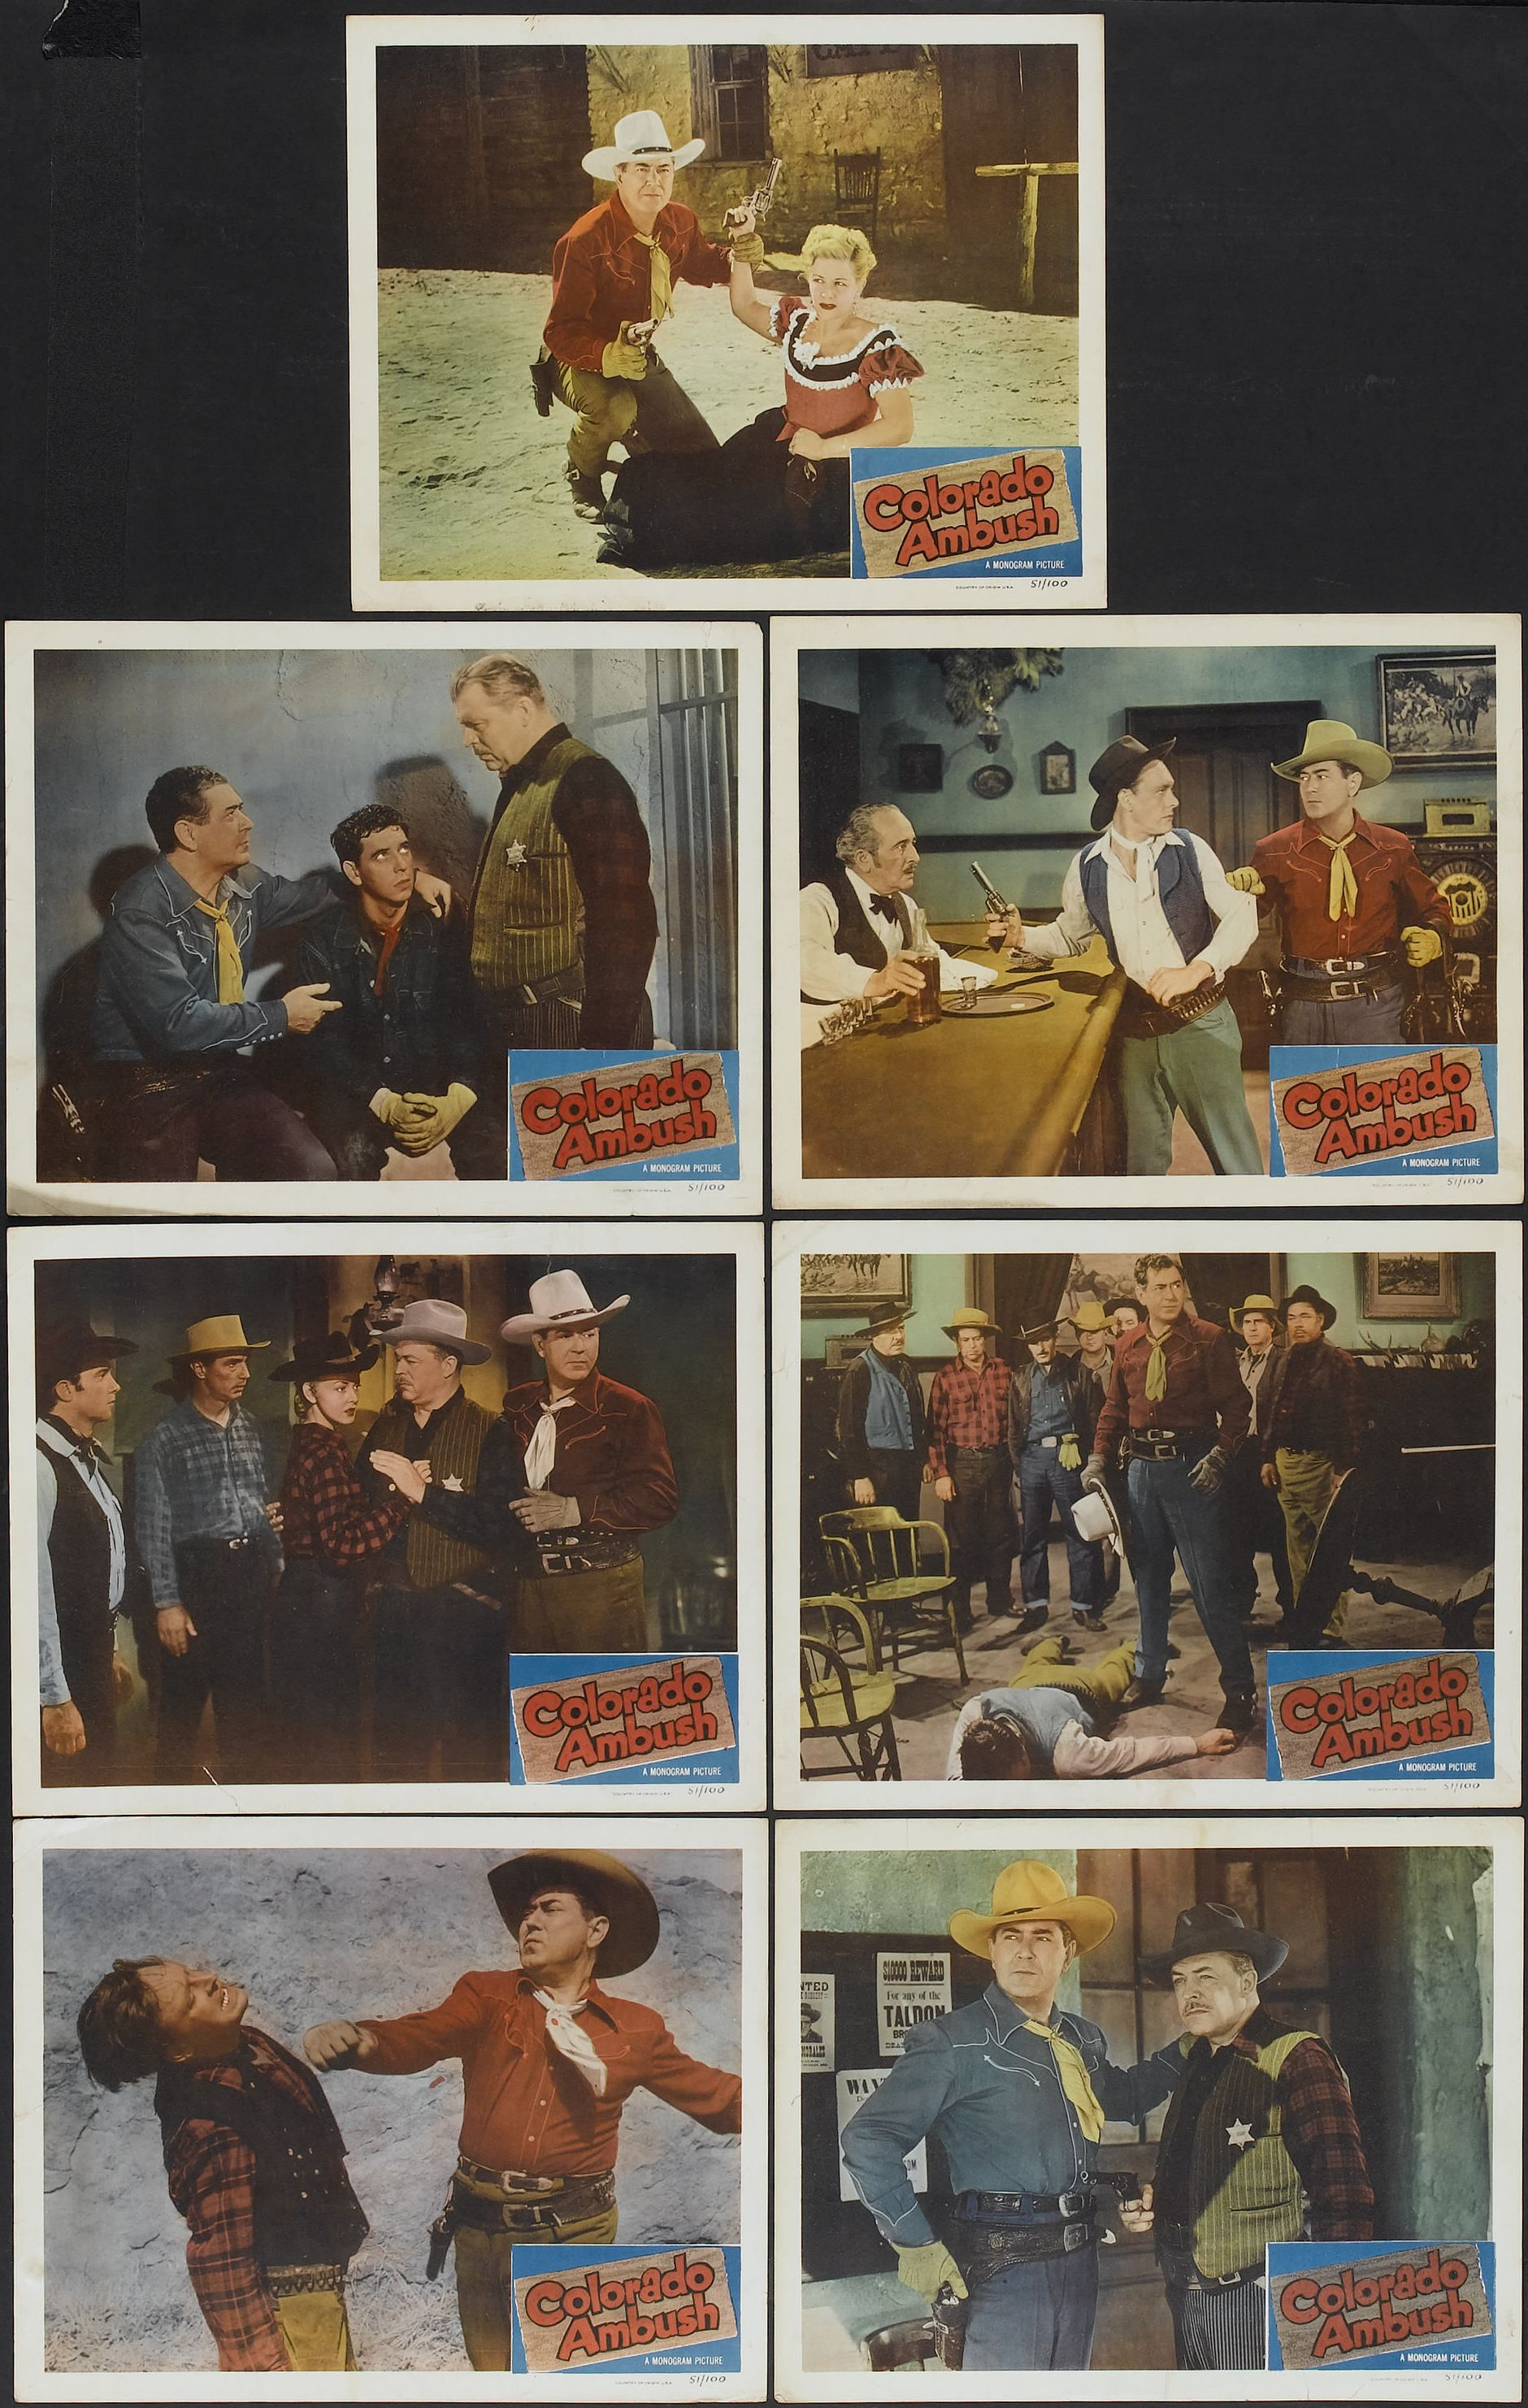 Johnny Mack Brown, Tommy Farrell, Lois Hall, Myron Healey, Christine McIntyre, Lee Roberts, and Lyle Talbot in Colorado Ambush (1951)